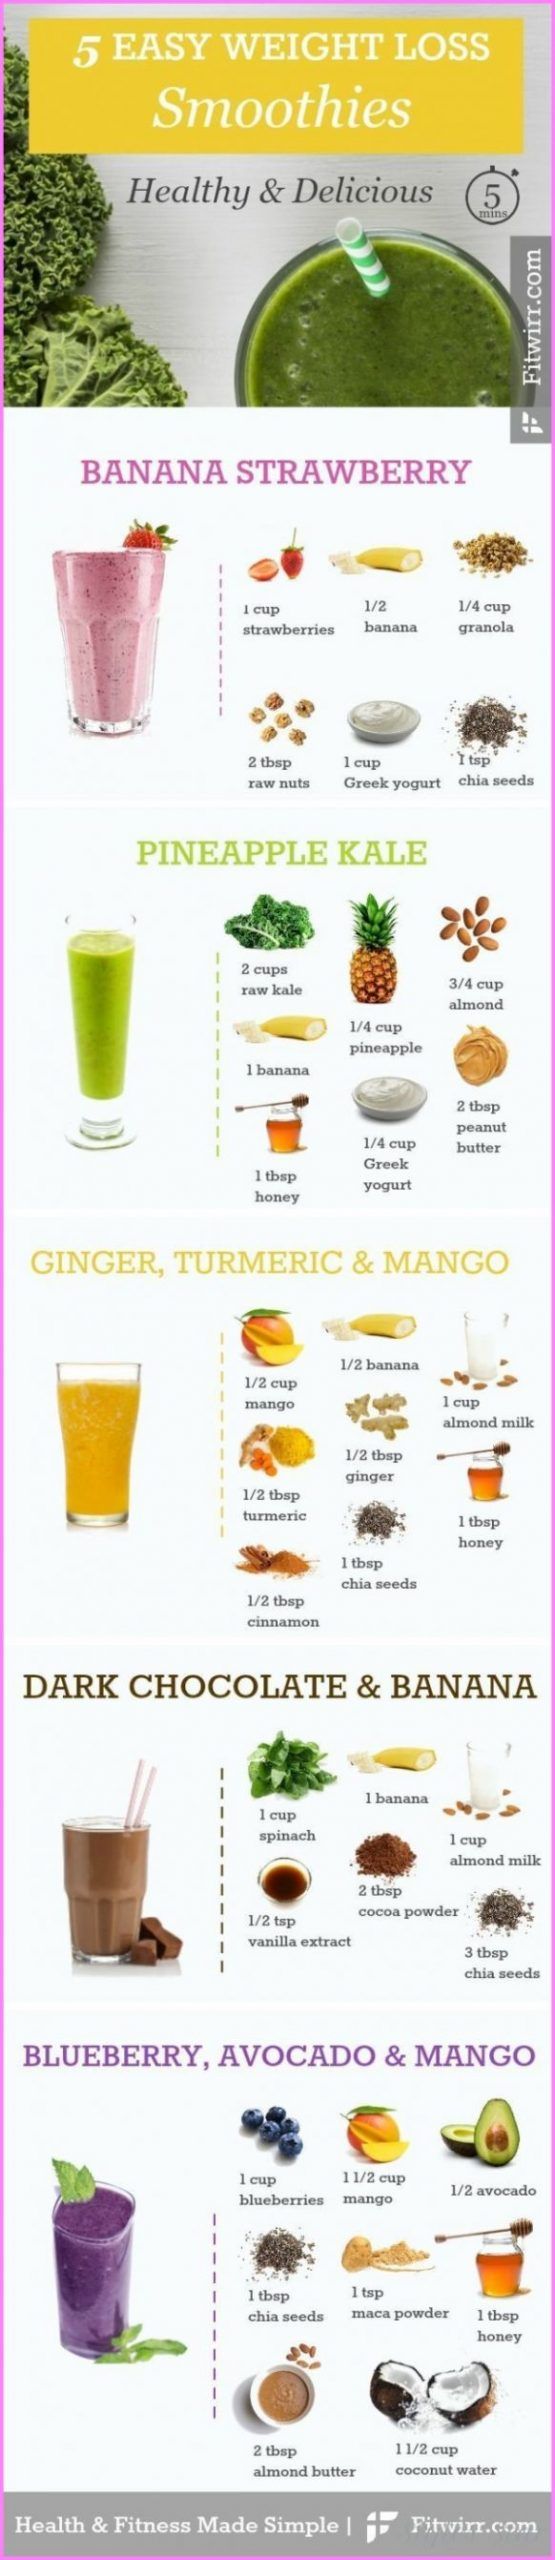 Nutribullet Recipes To Lose Weight Fast - Star Styles   StylesStar ..